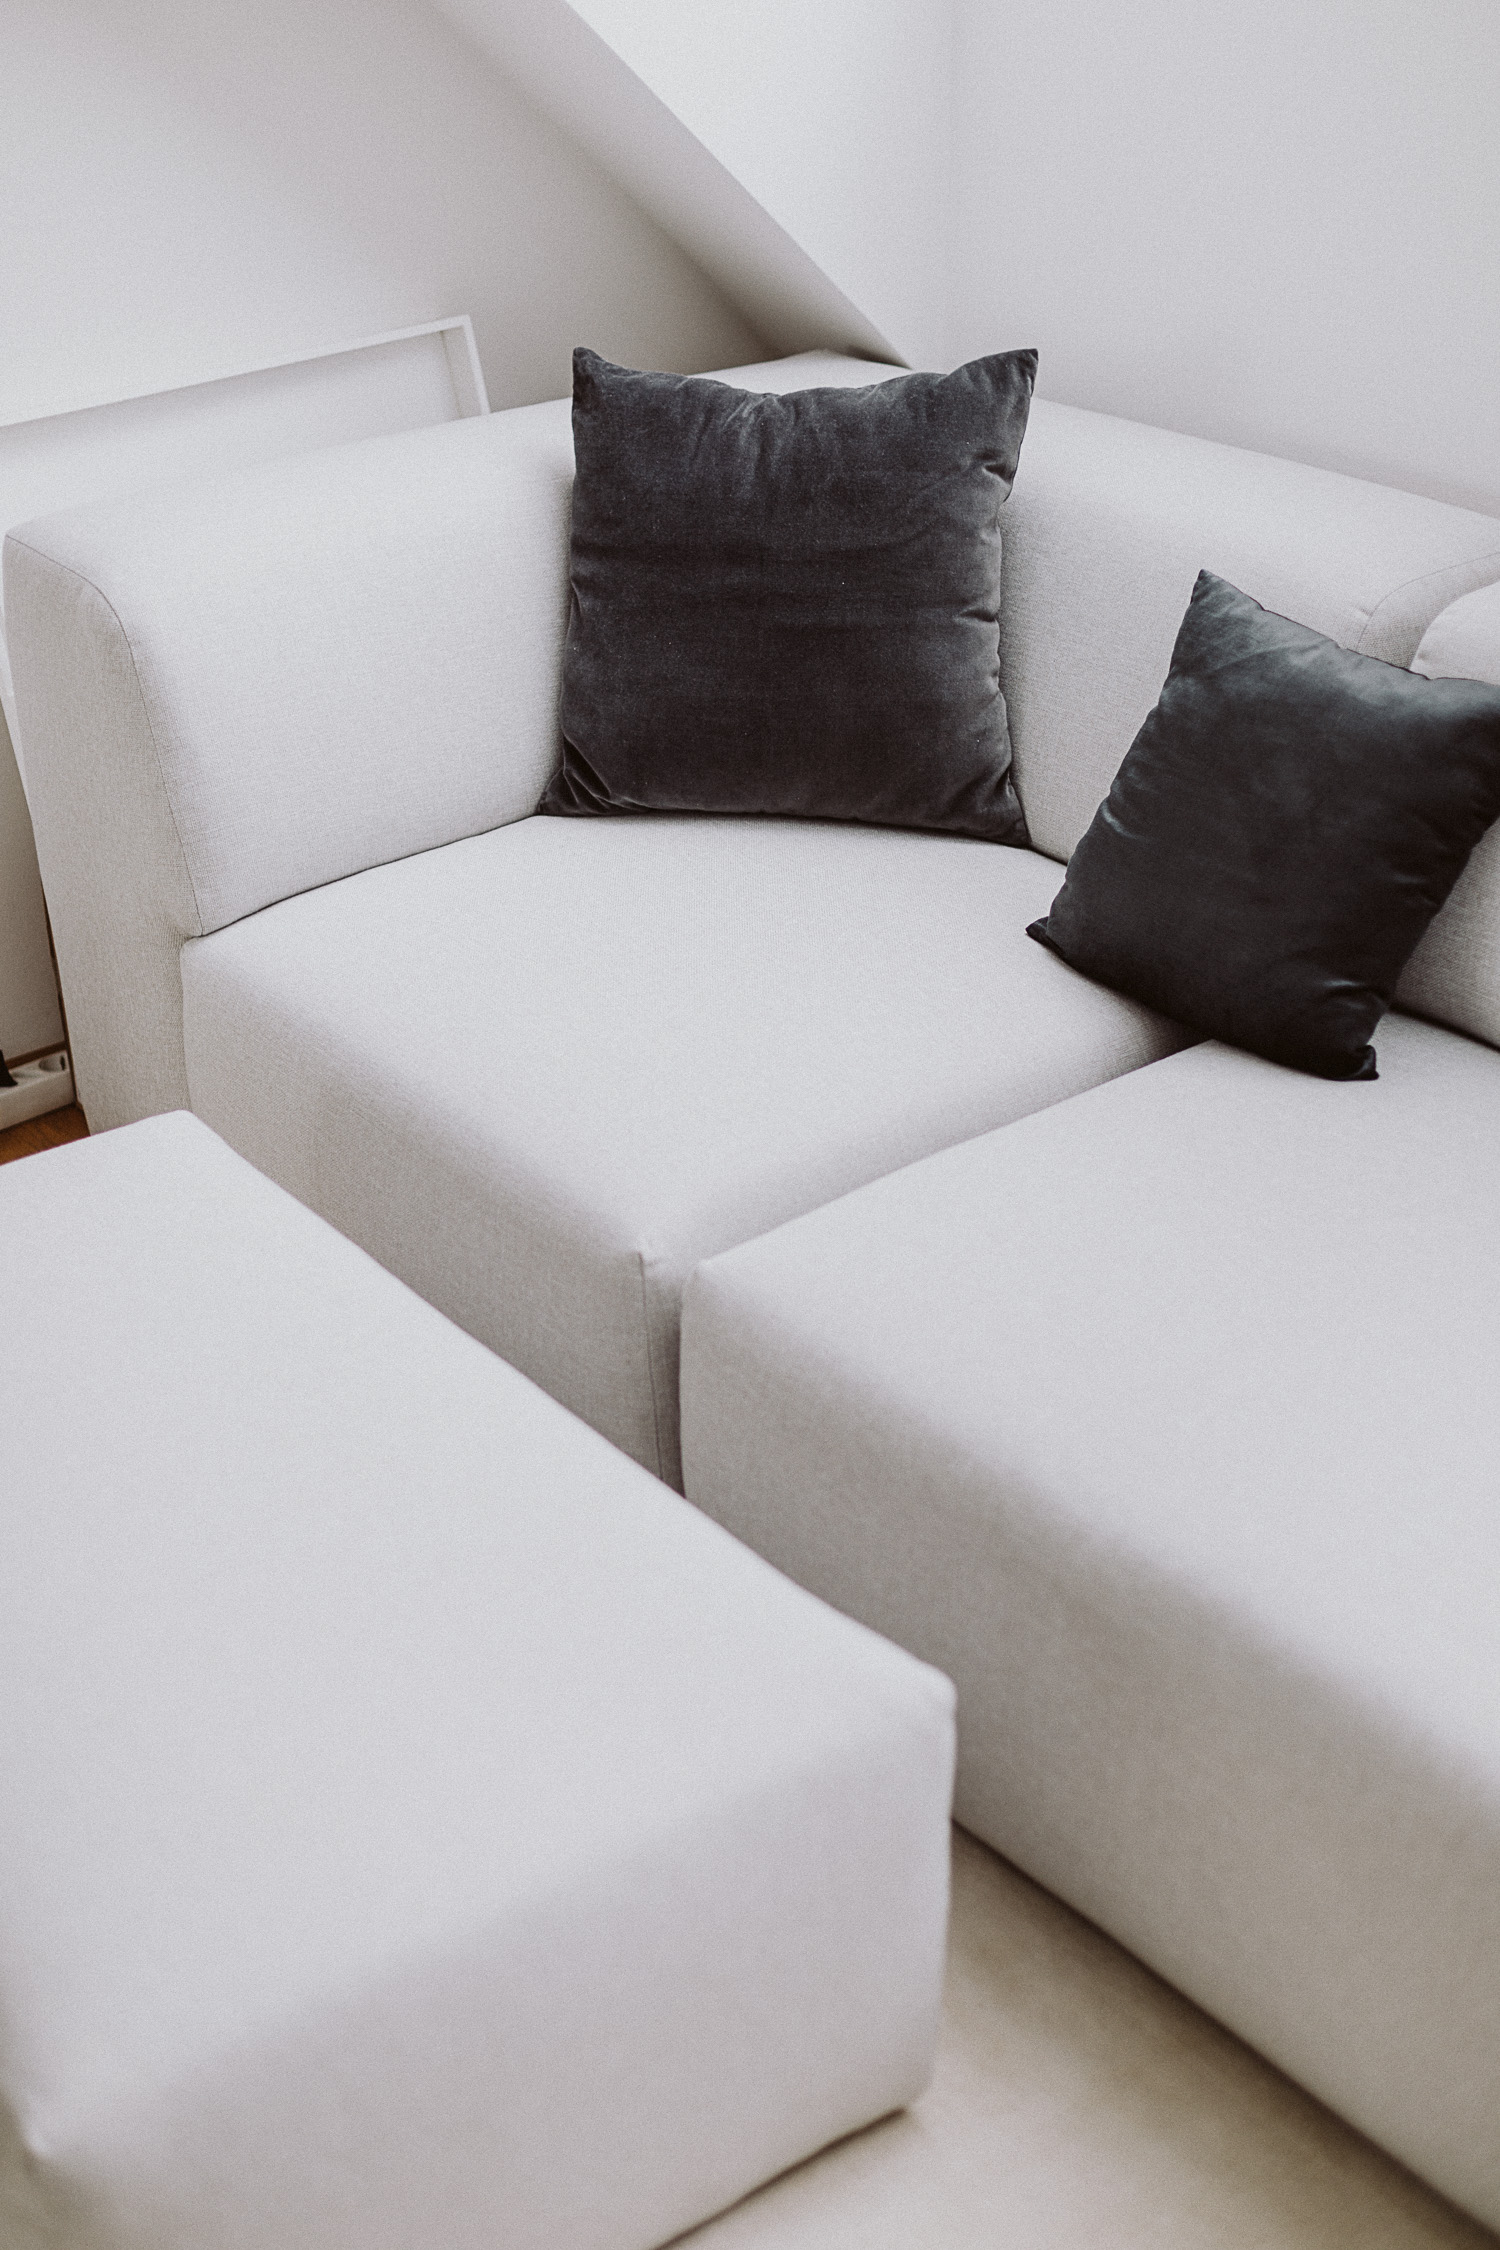 Sofa Trends 2019: The Pillow - Love Daily Dose